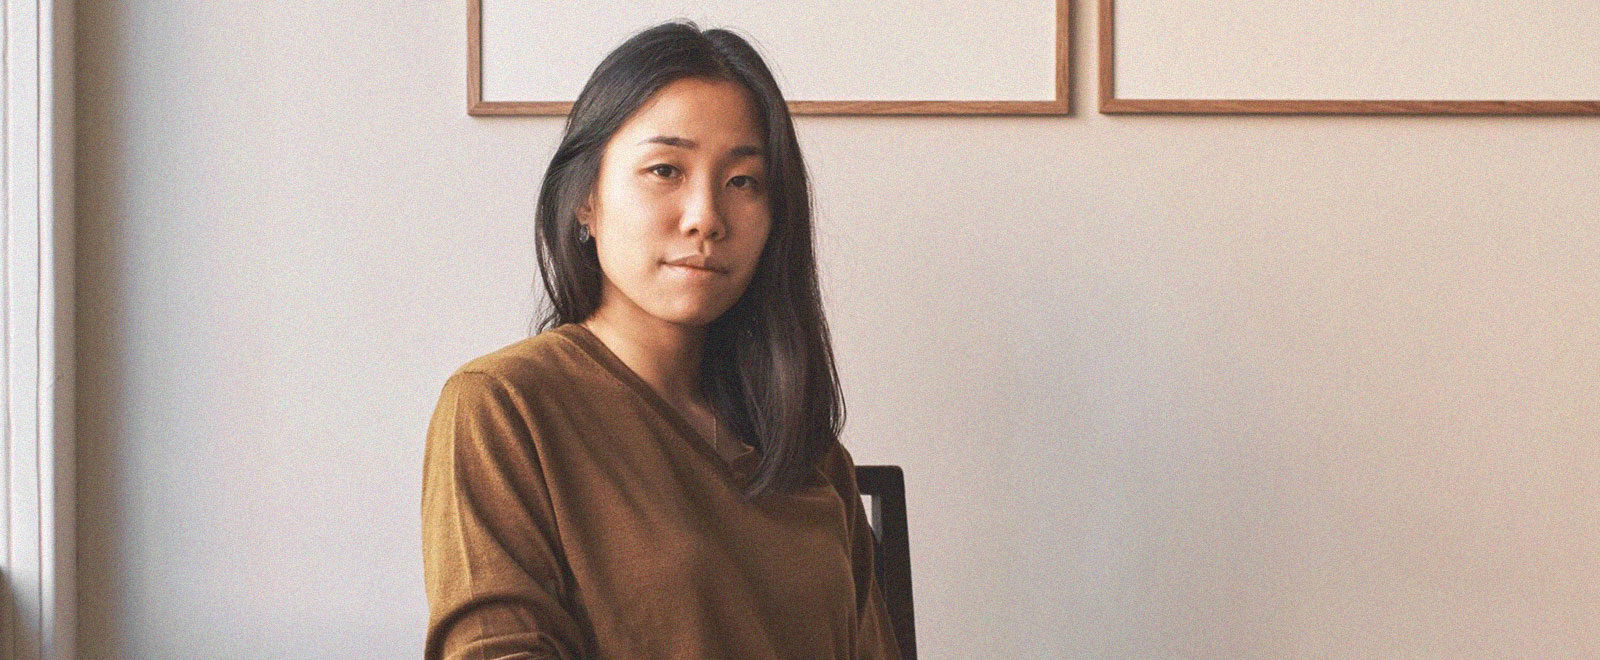 Acquainted: An Interview with Cereal Editor Rosa Park